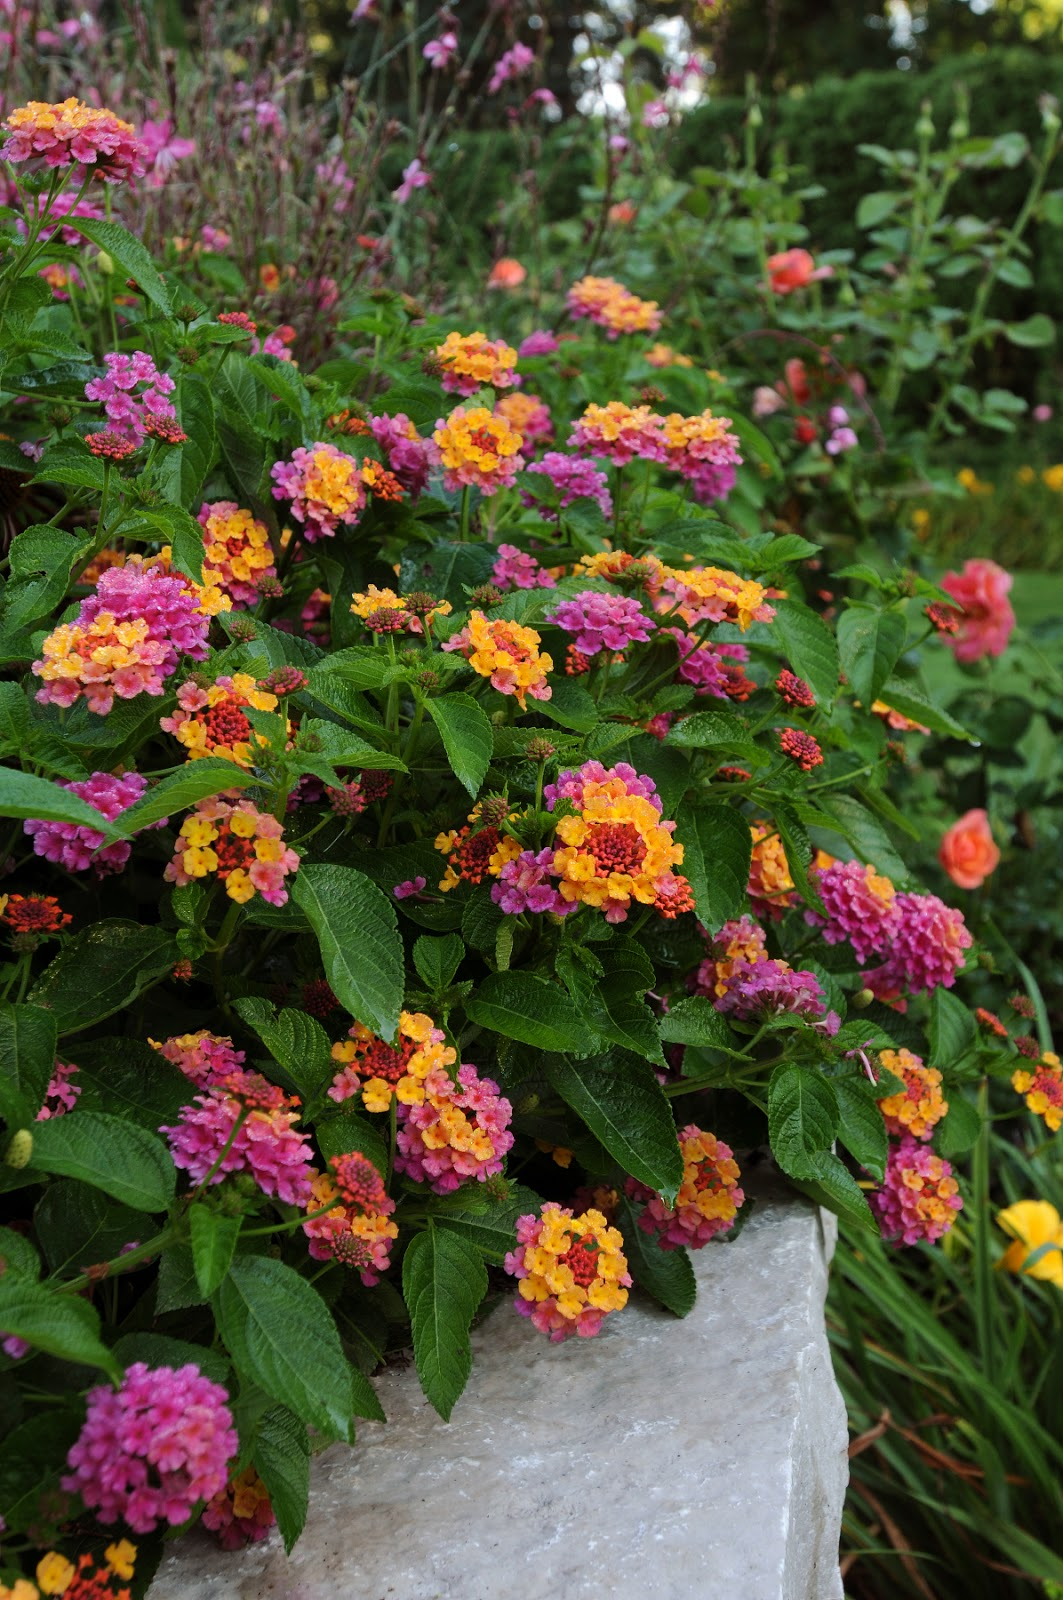 All The Dirt On Gardening Heat Tolerant Plants For The 2013 Summer